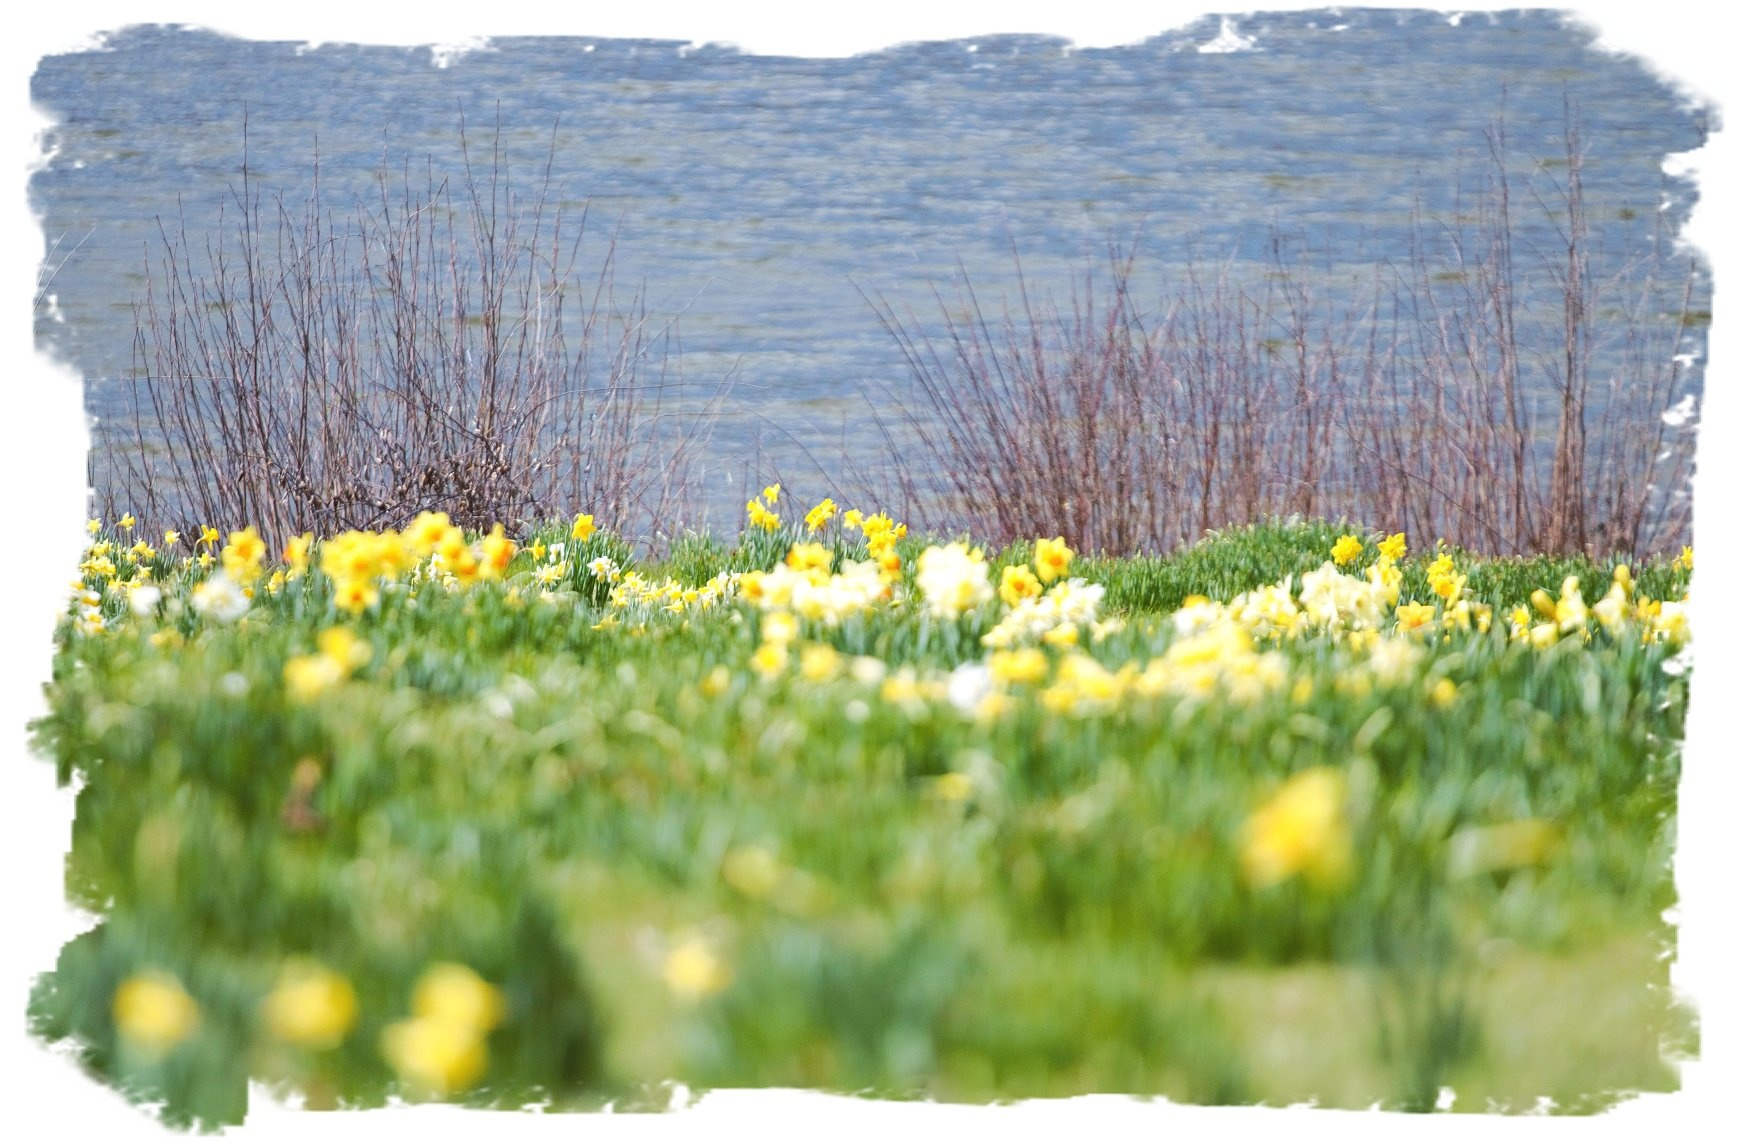 Daffodil Meadow by Claudia Hirschochs